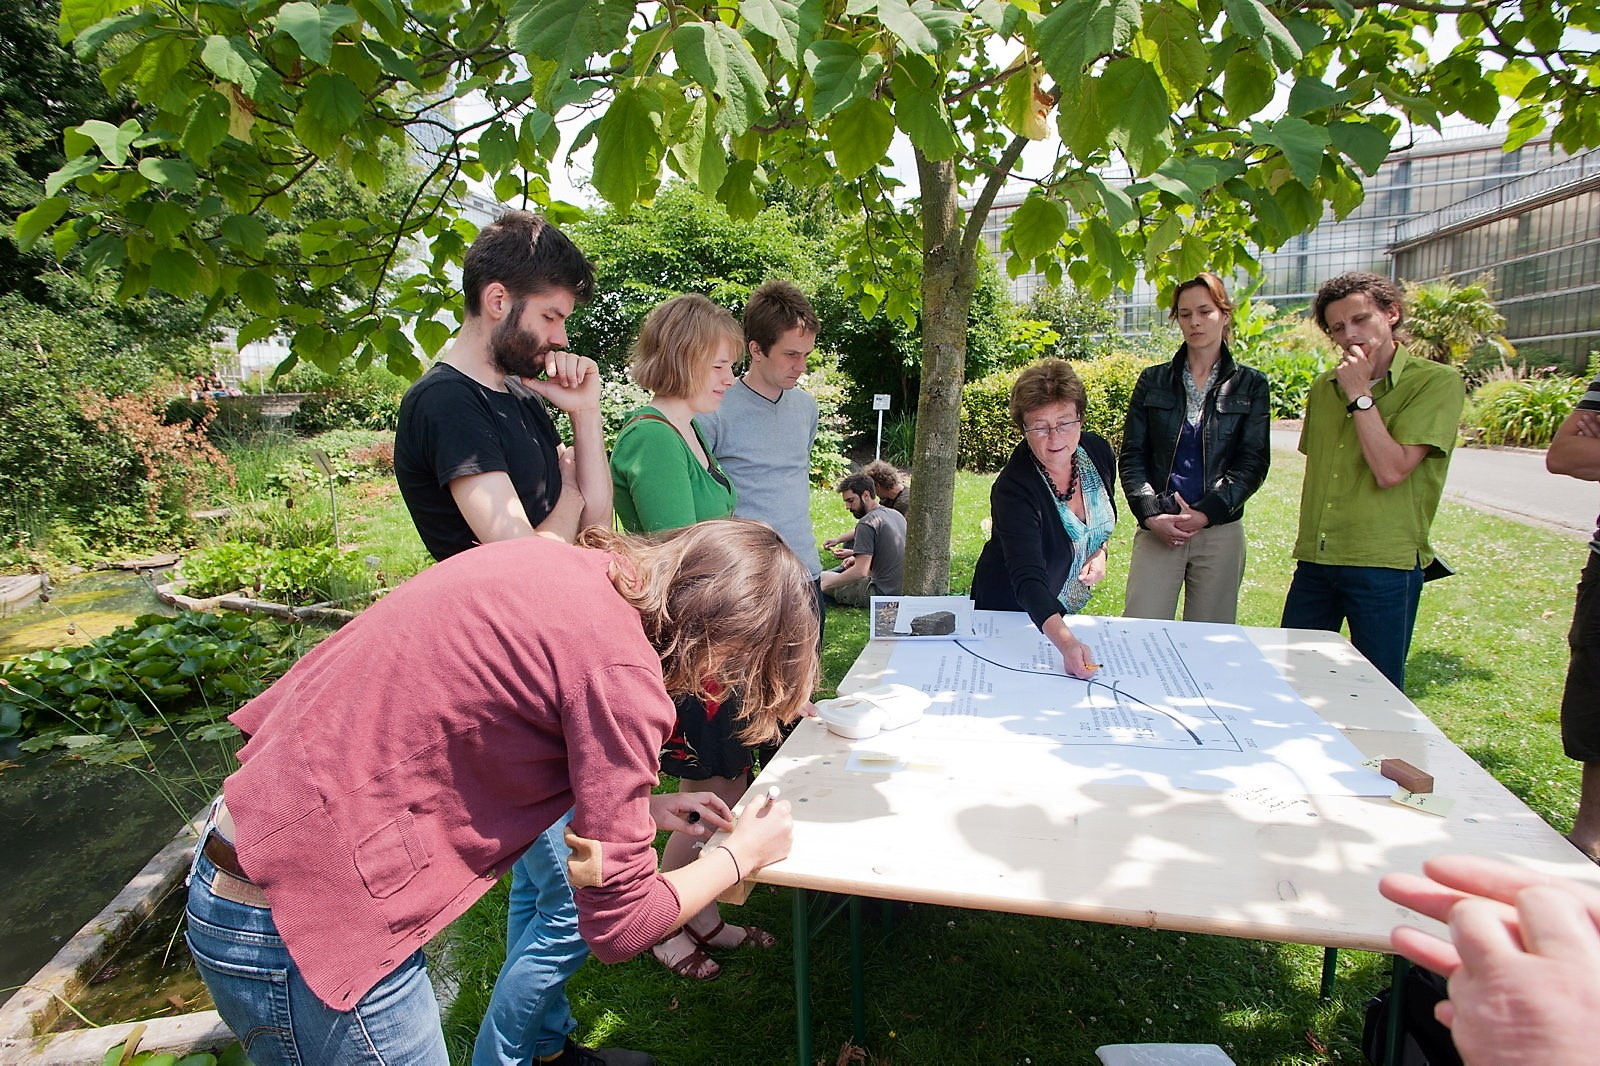 Universities can act as living laboratories where solutions to sustainability are implemented, researched and taught. In this case, students and staff are preparing plans for a sustainability garden on campus. (Photo: Green Office Ghent)